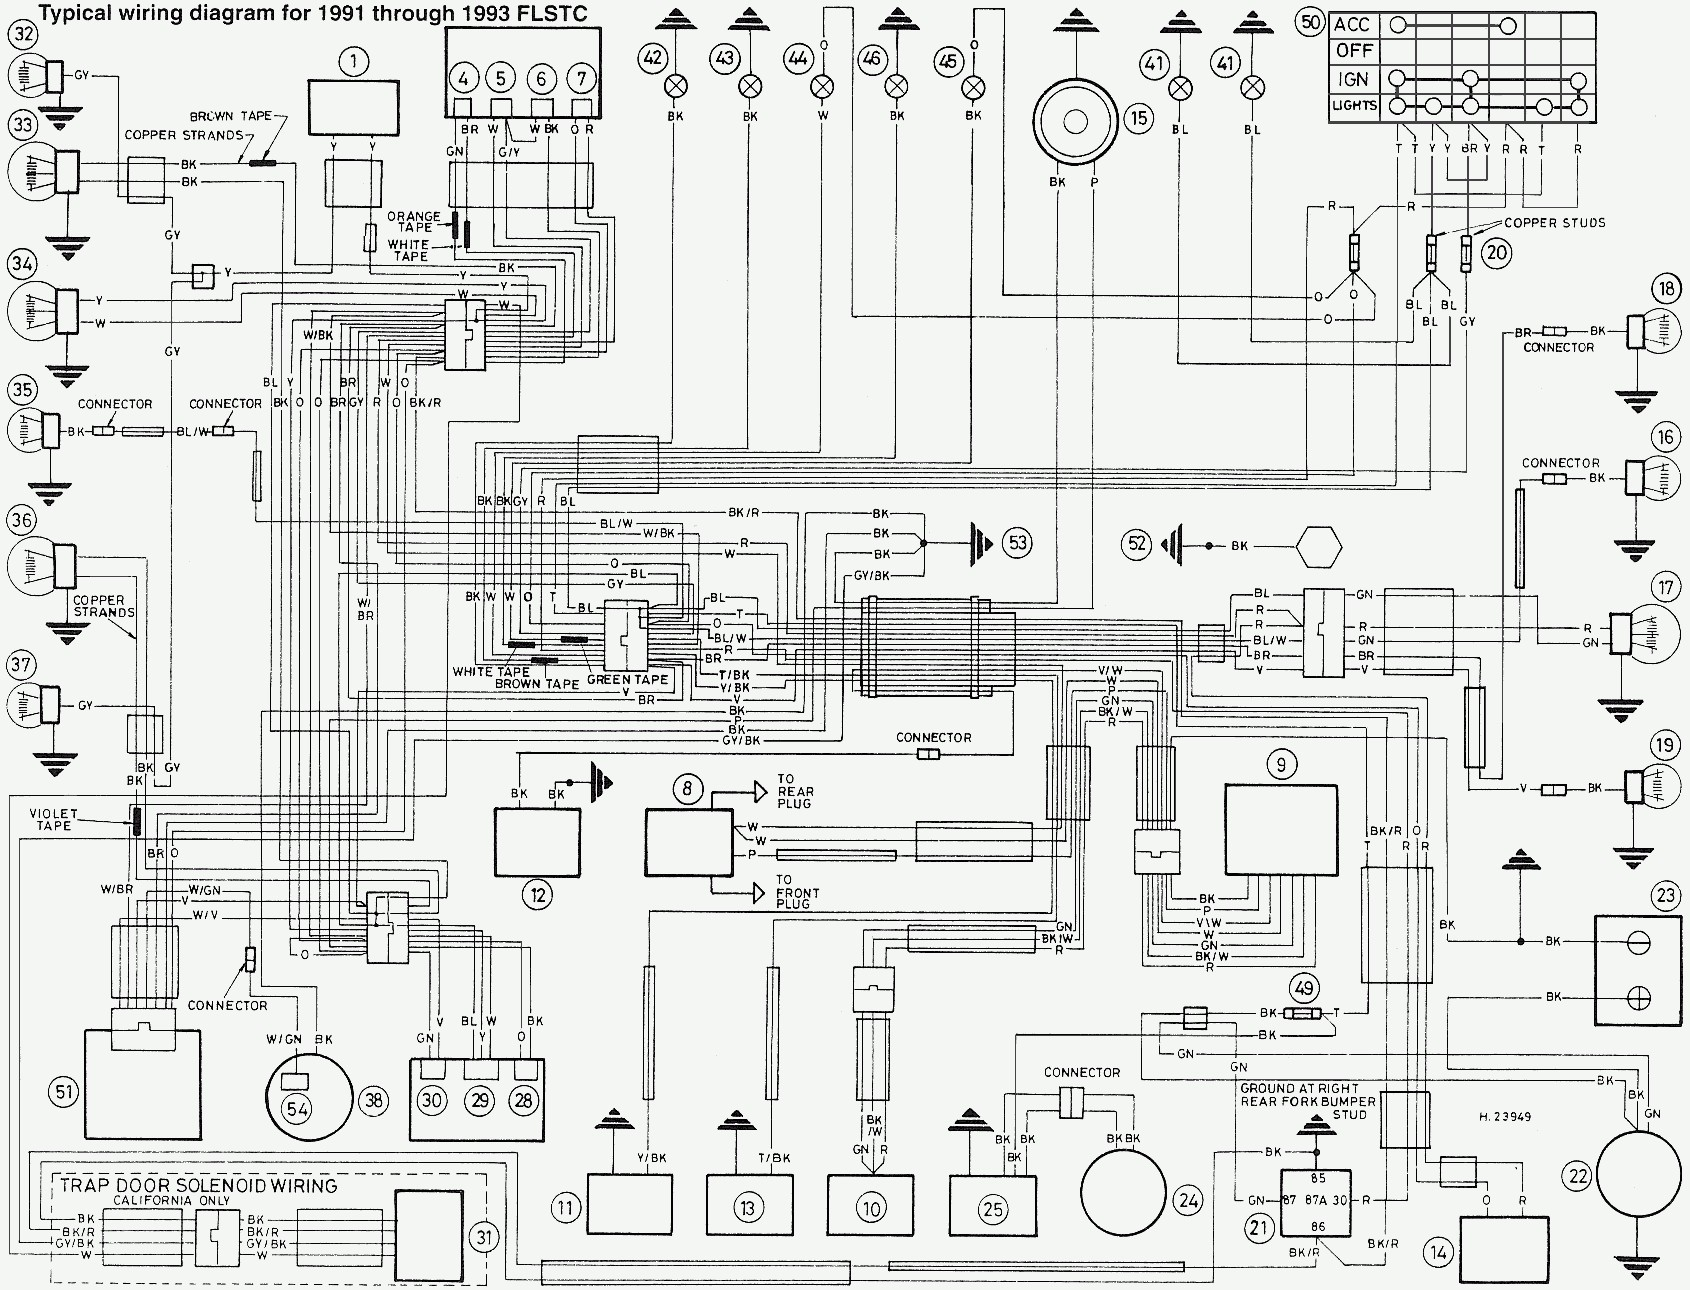 Wiring Diagram 2002 Harley Davidson Flht - 1991 Cadillac Deville Engine  Diagram for Wiring Diagram SchematicsWiring Diagram Schematics